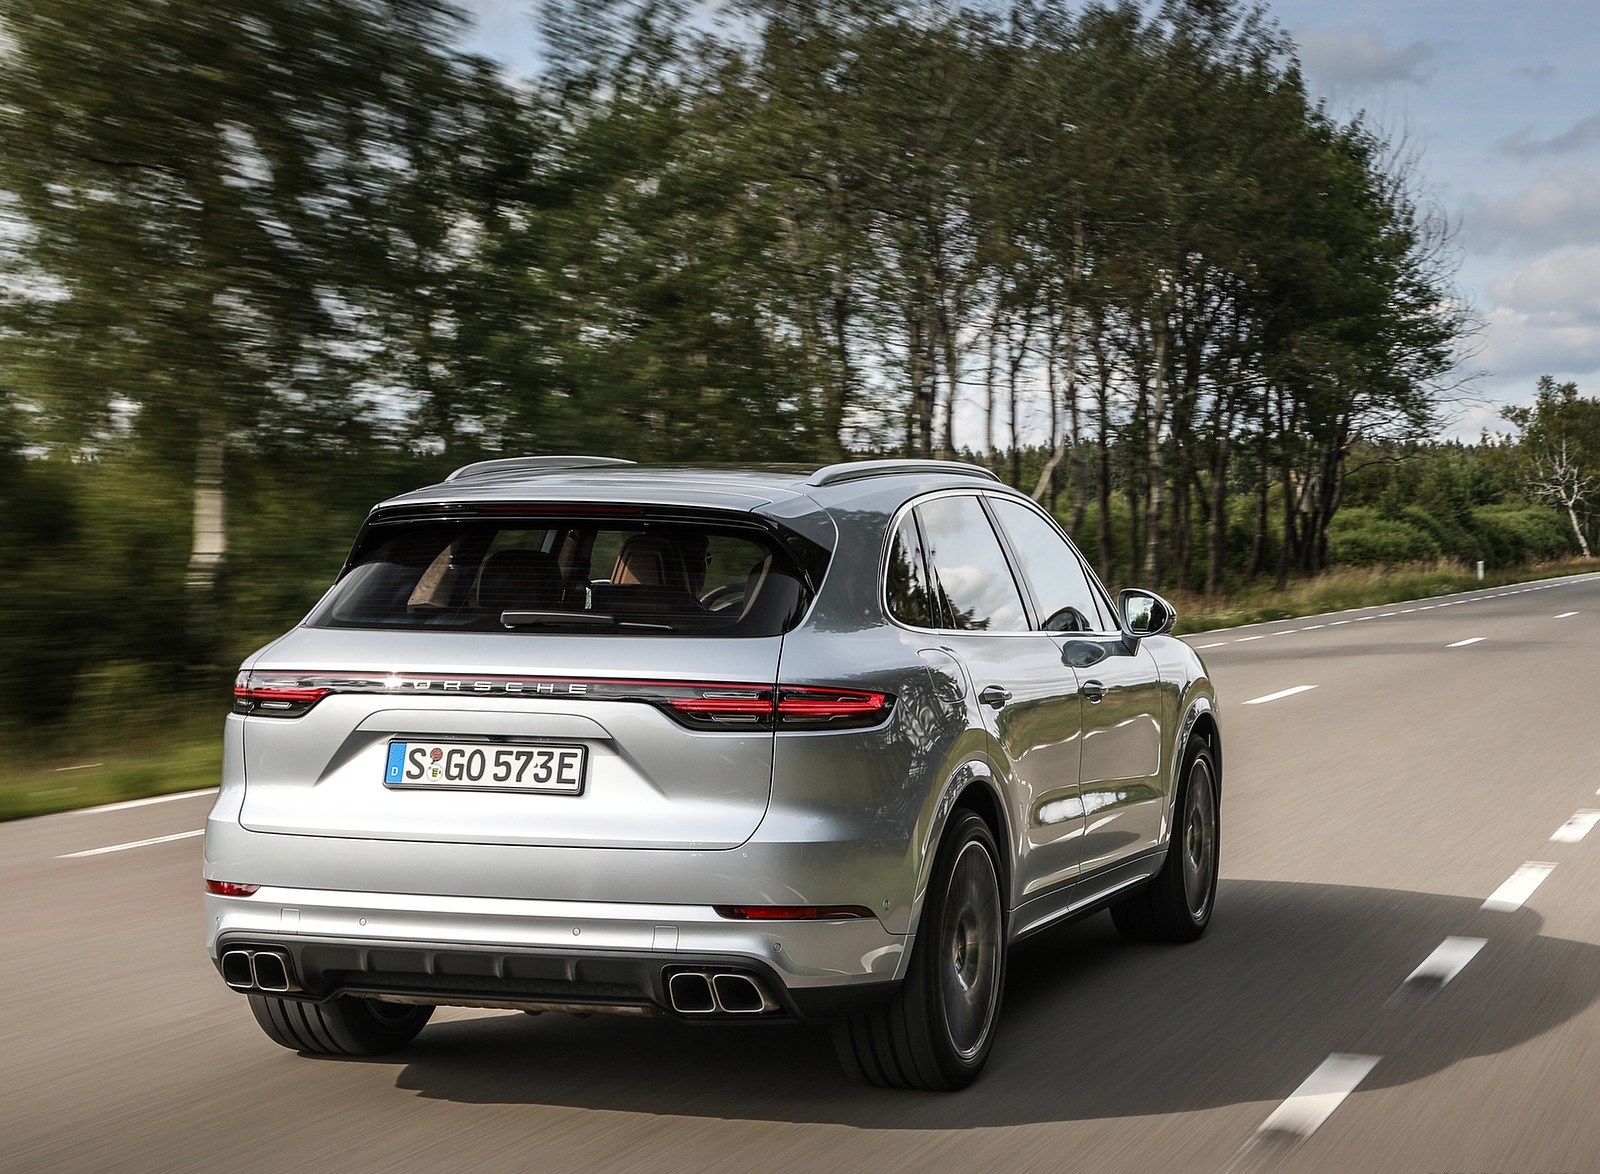 2020 Porsche Cayenne Turbo S E-Hybrid Rear Three-Quarter Wallpapers (6)